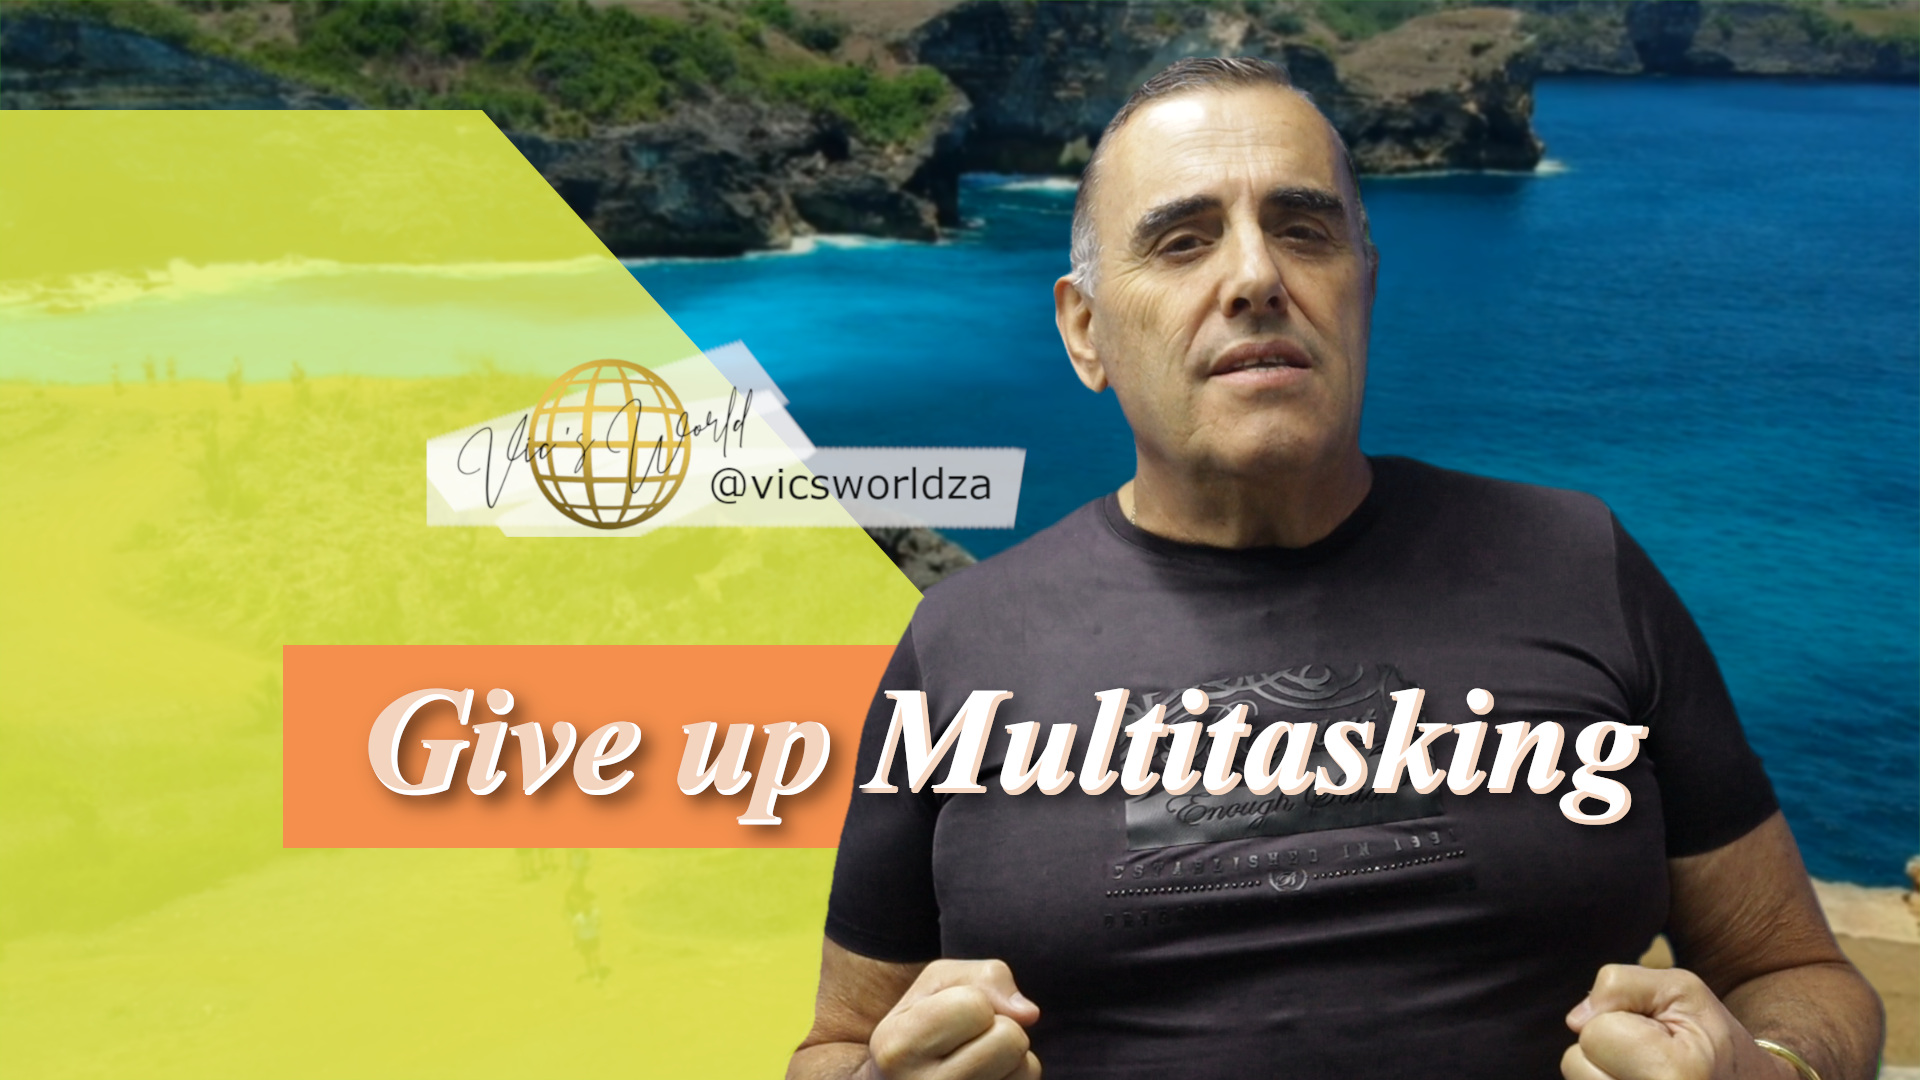 Give up multitasking! Why? You may ask.